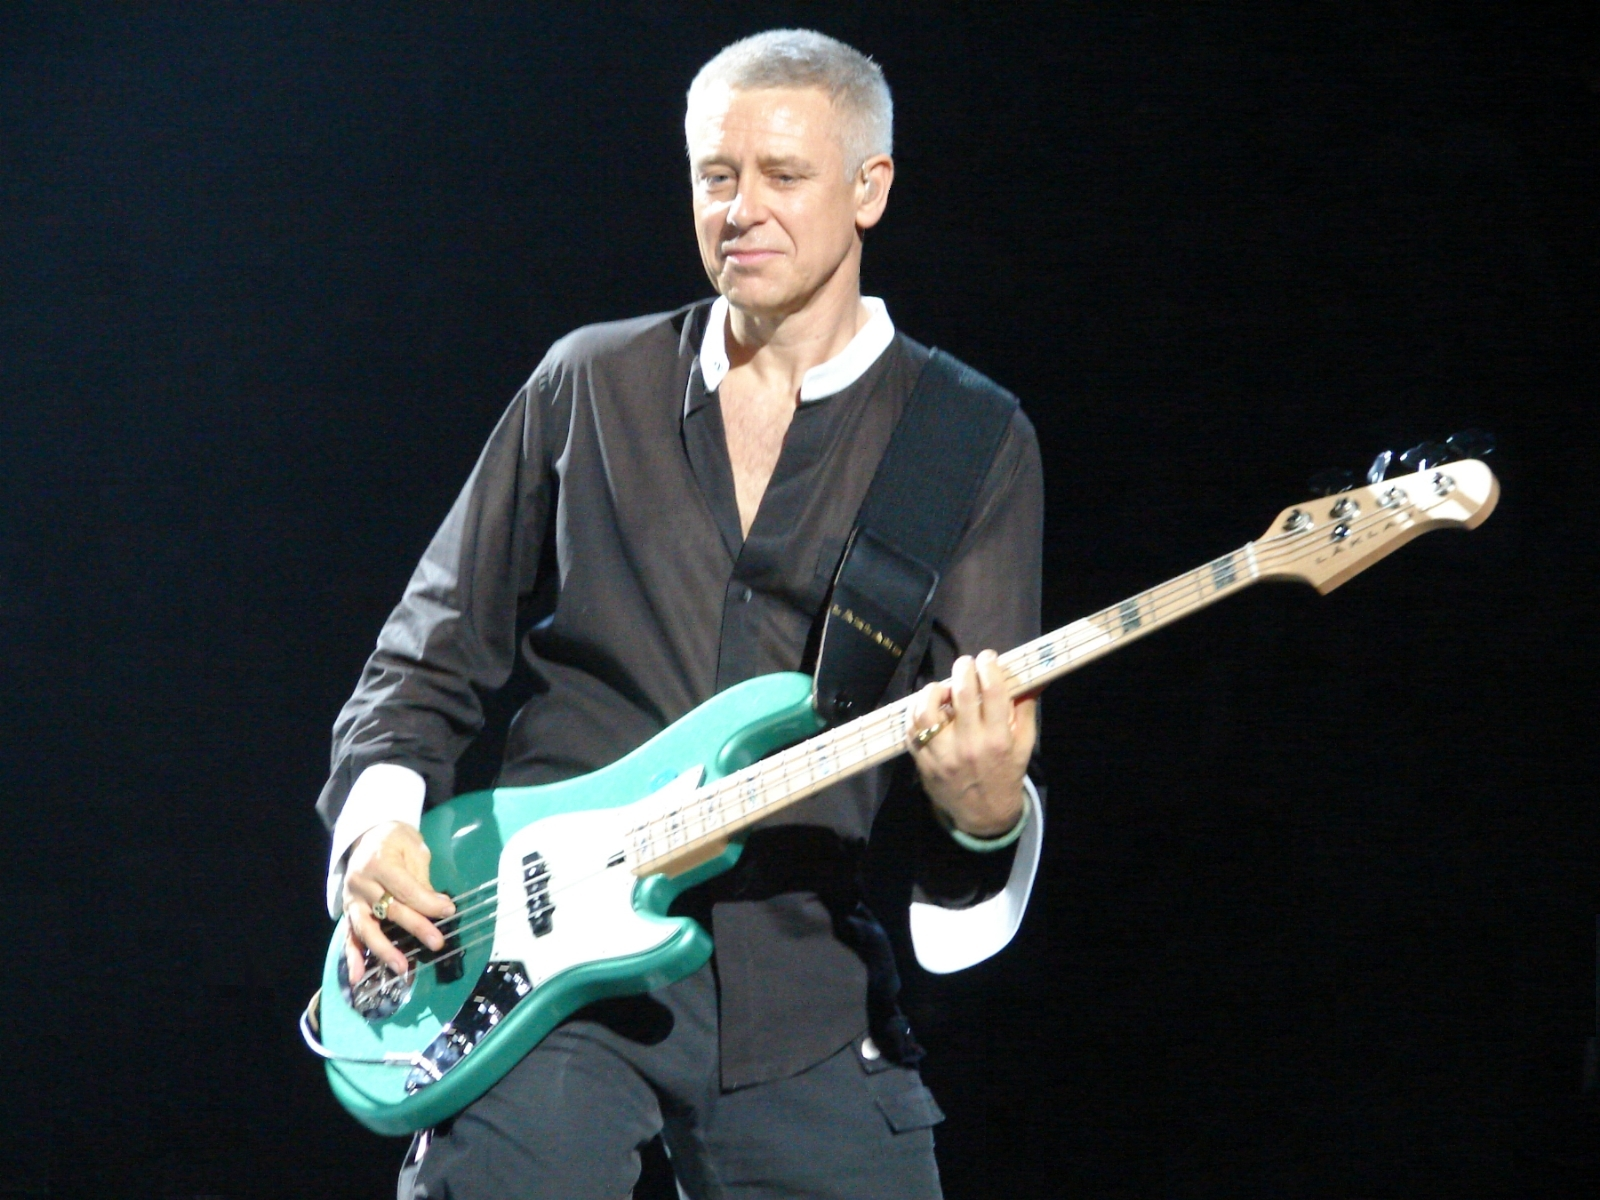 U2's Adam Clayton takes bass lessons AFTER 'Achtung Baby' Album